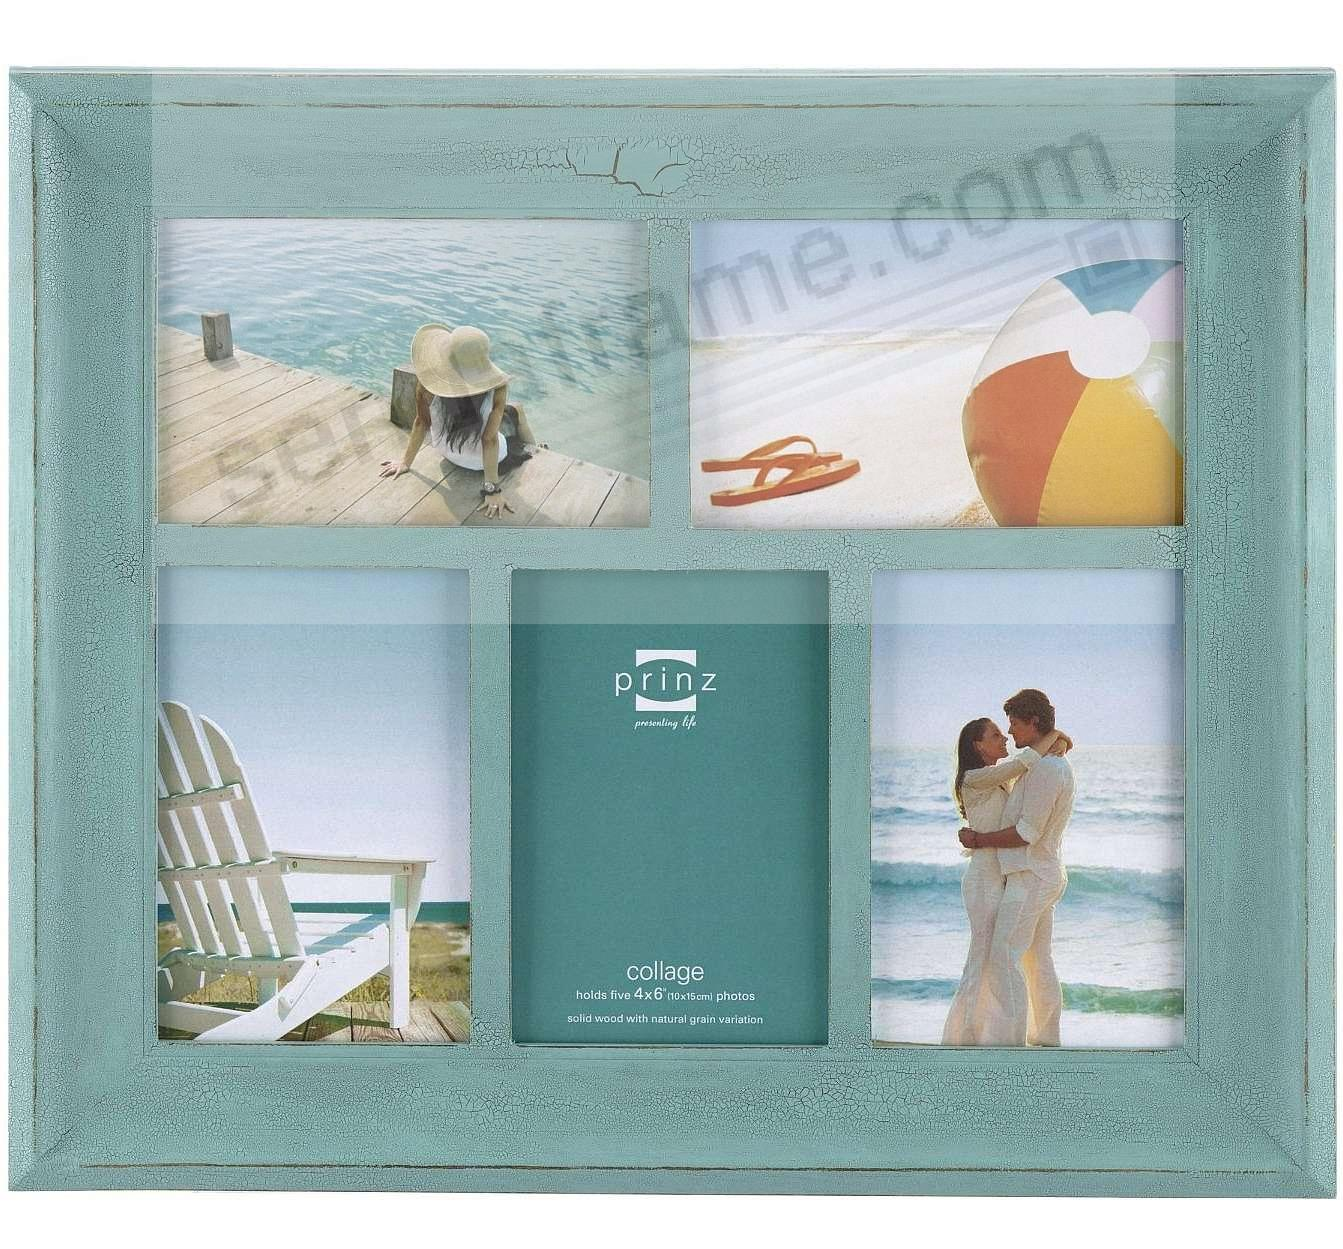 CLEARWATER Aquamarine-stain wood 5/4x6 collage frame by Prinz ...